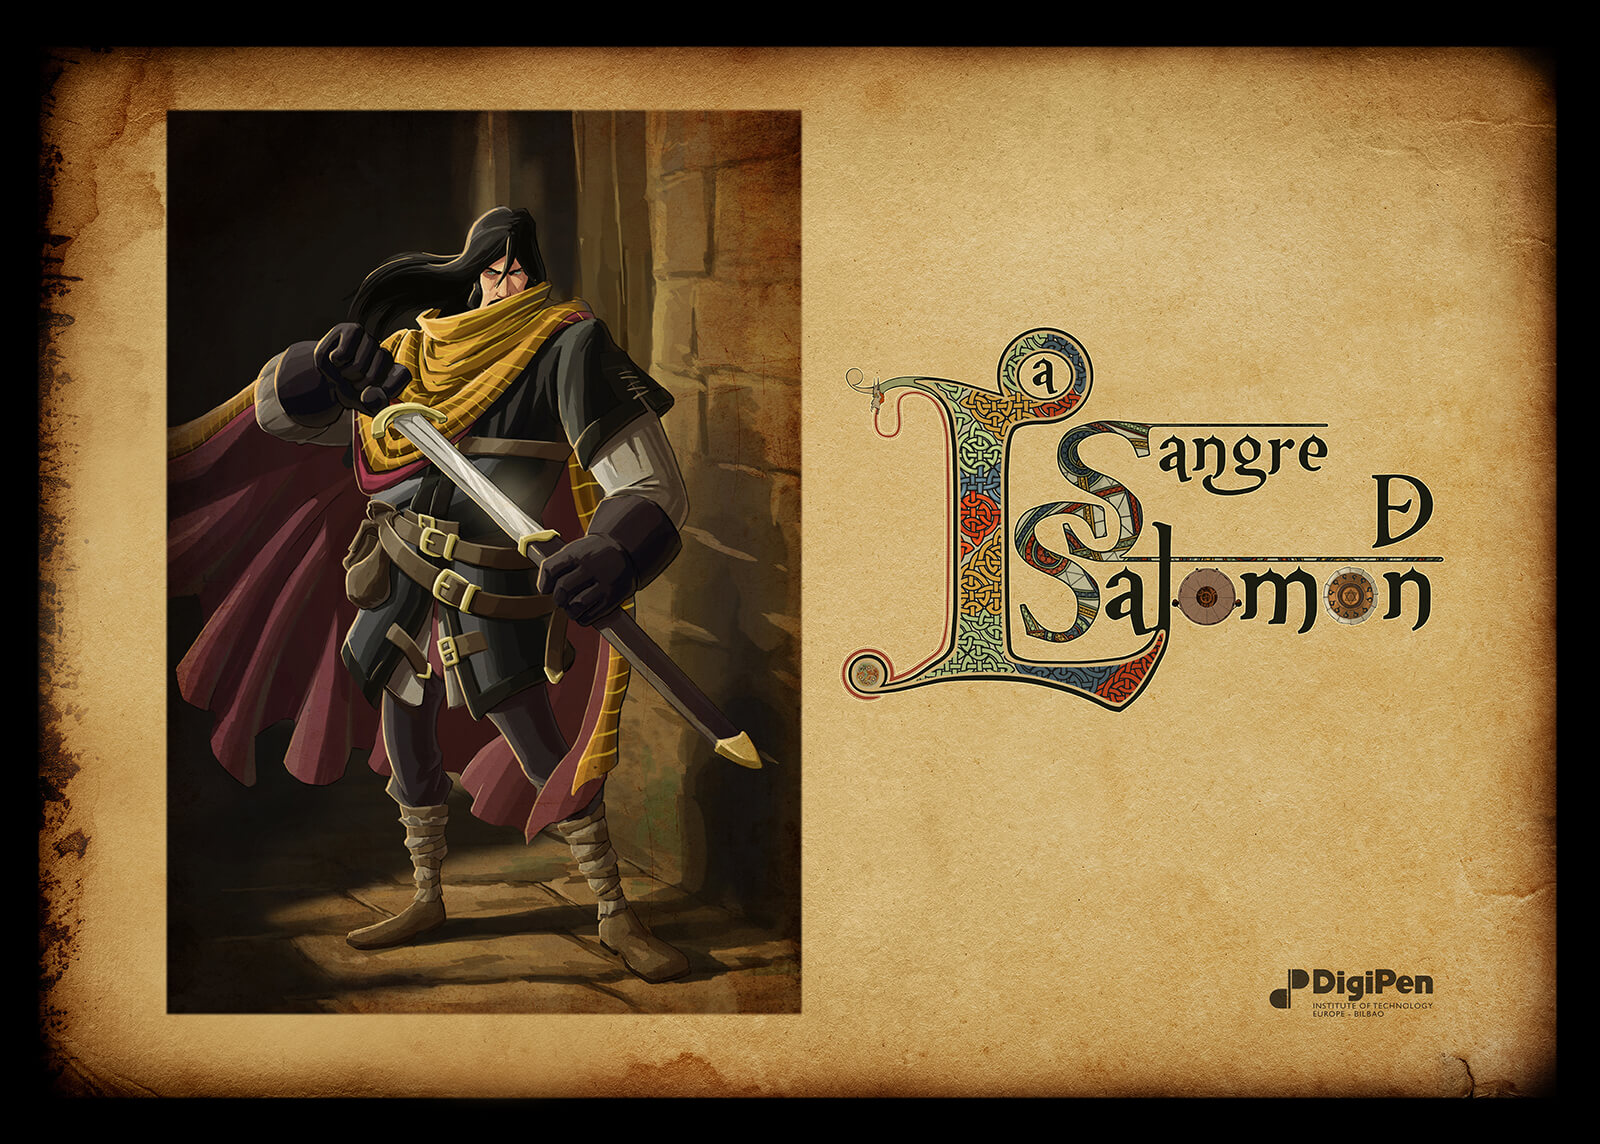 Presentation slide for the Sangre de Salomon, depicting a man with long-black hair, medieval armor, and a red cape and sword